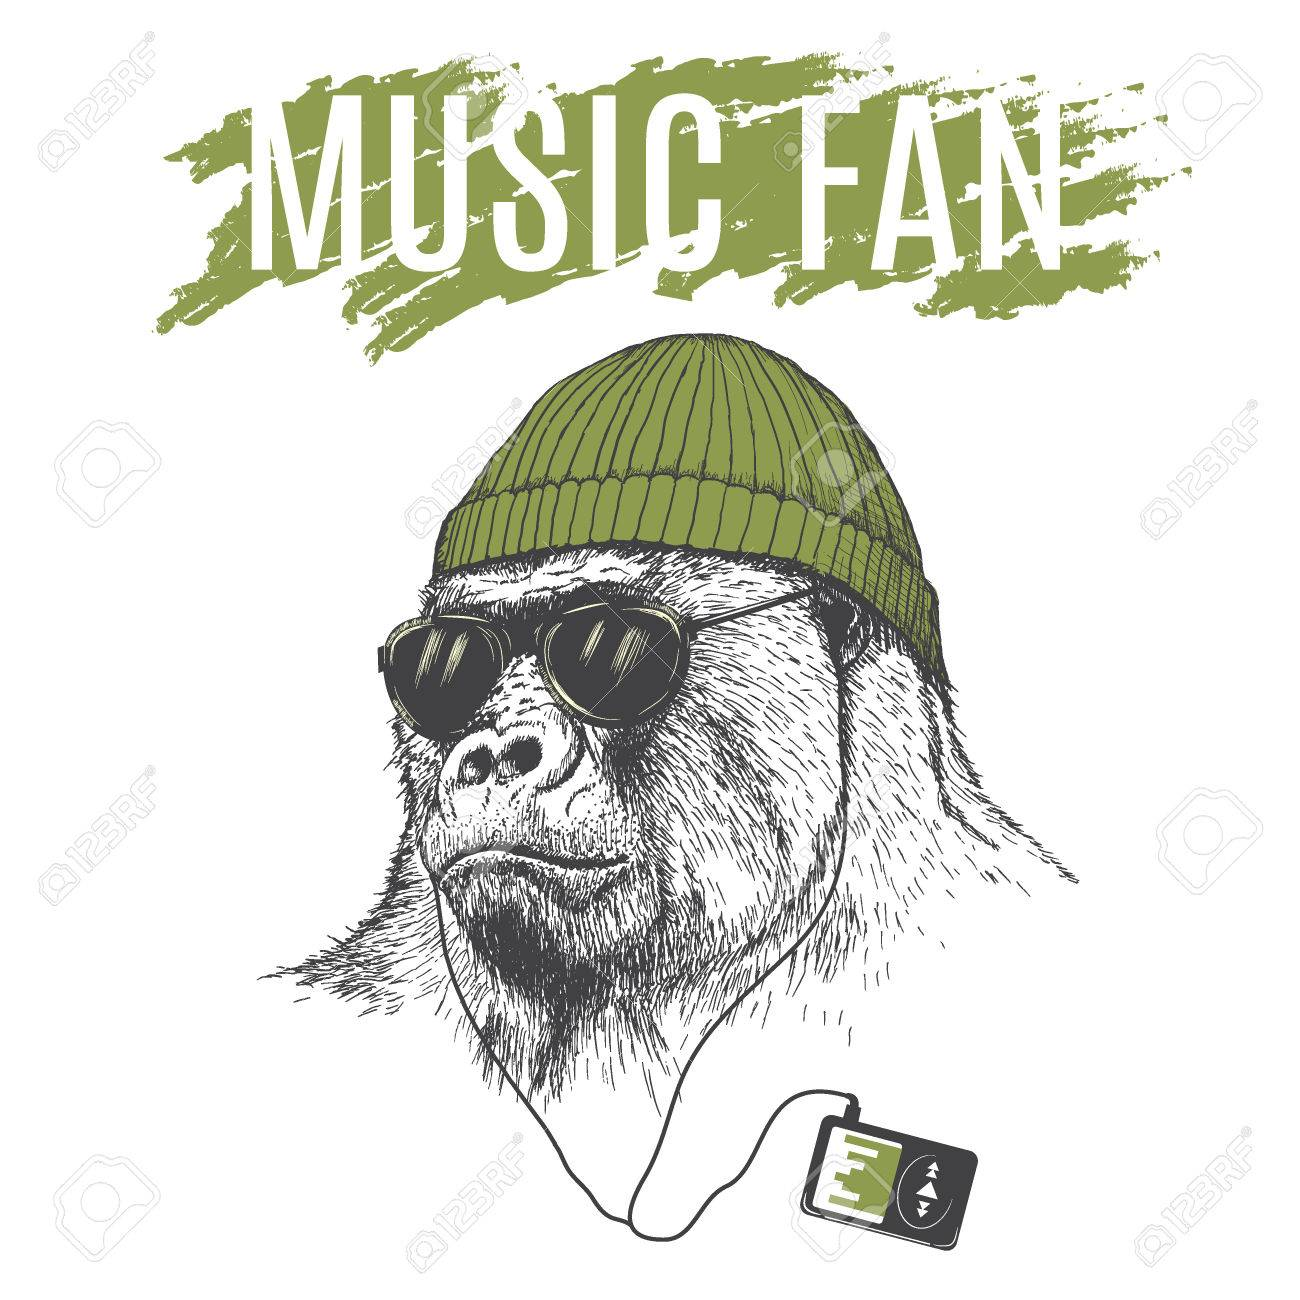 Monkey listening to music in headphones .Dressed in hat.Vector illustration - 65648630